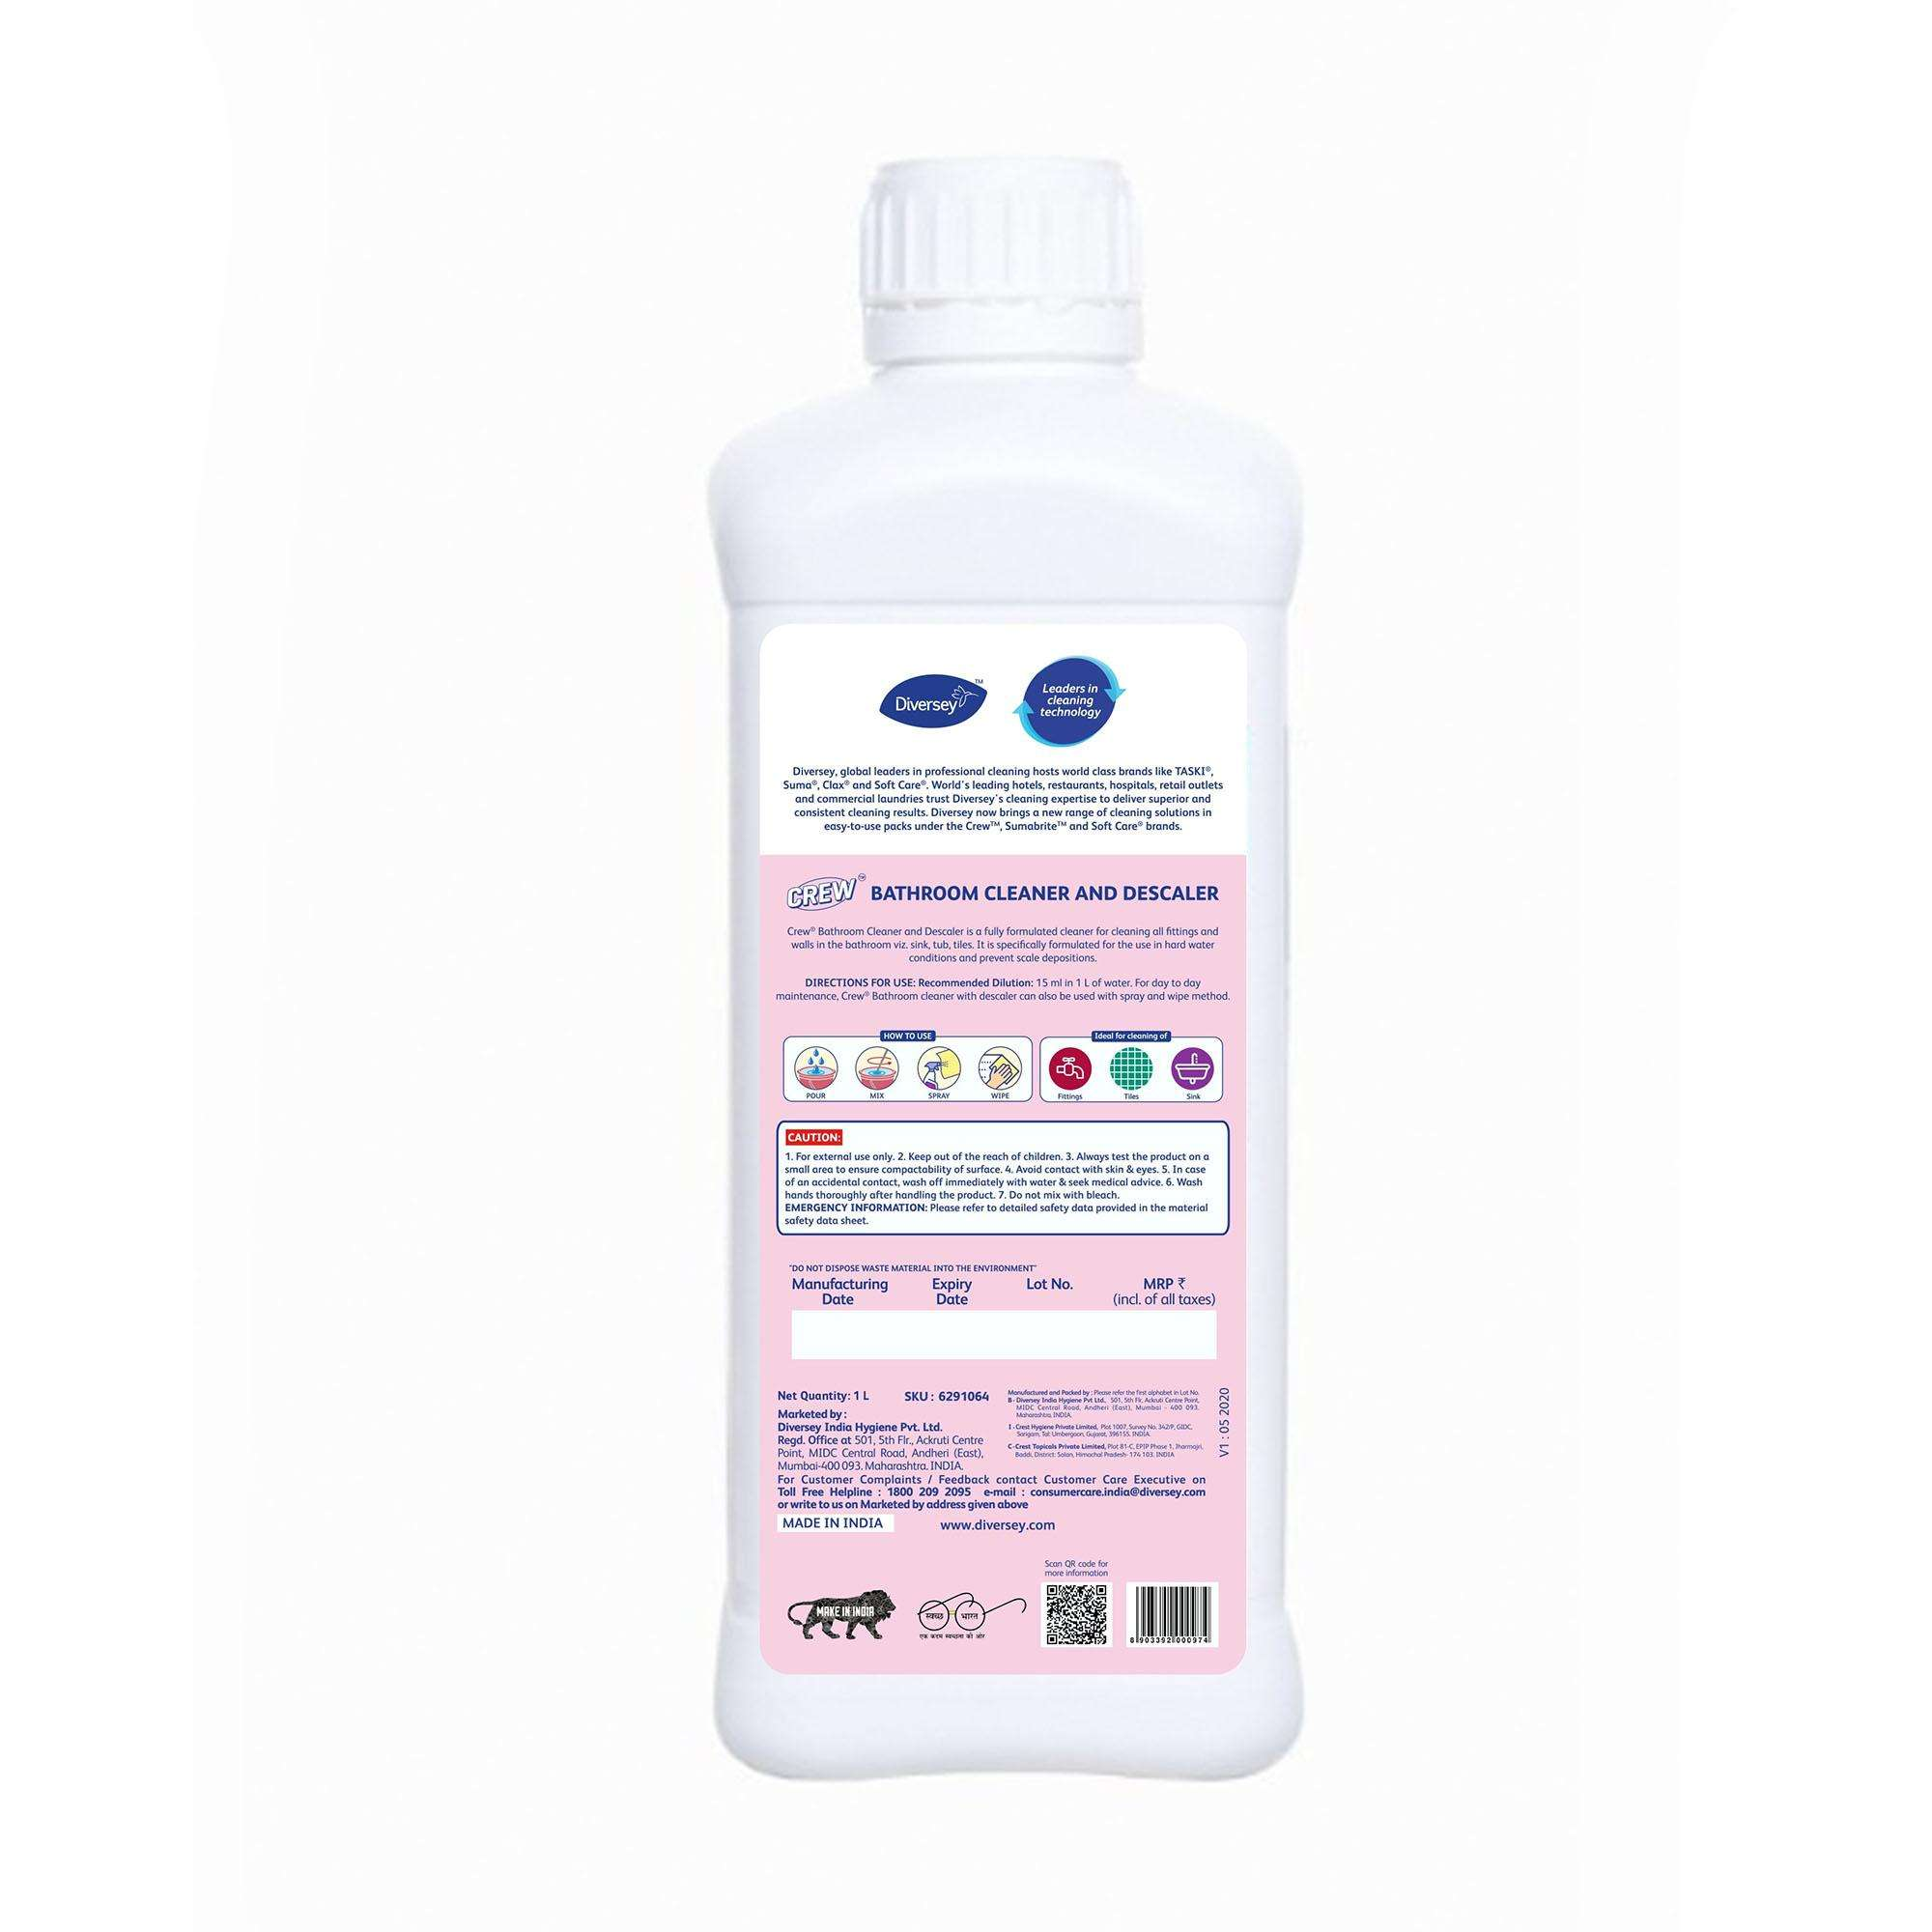 Bathroom-Cleaner-and-Descaler.-1-Litre-back2000x2000.jpg